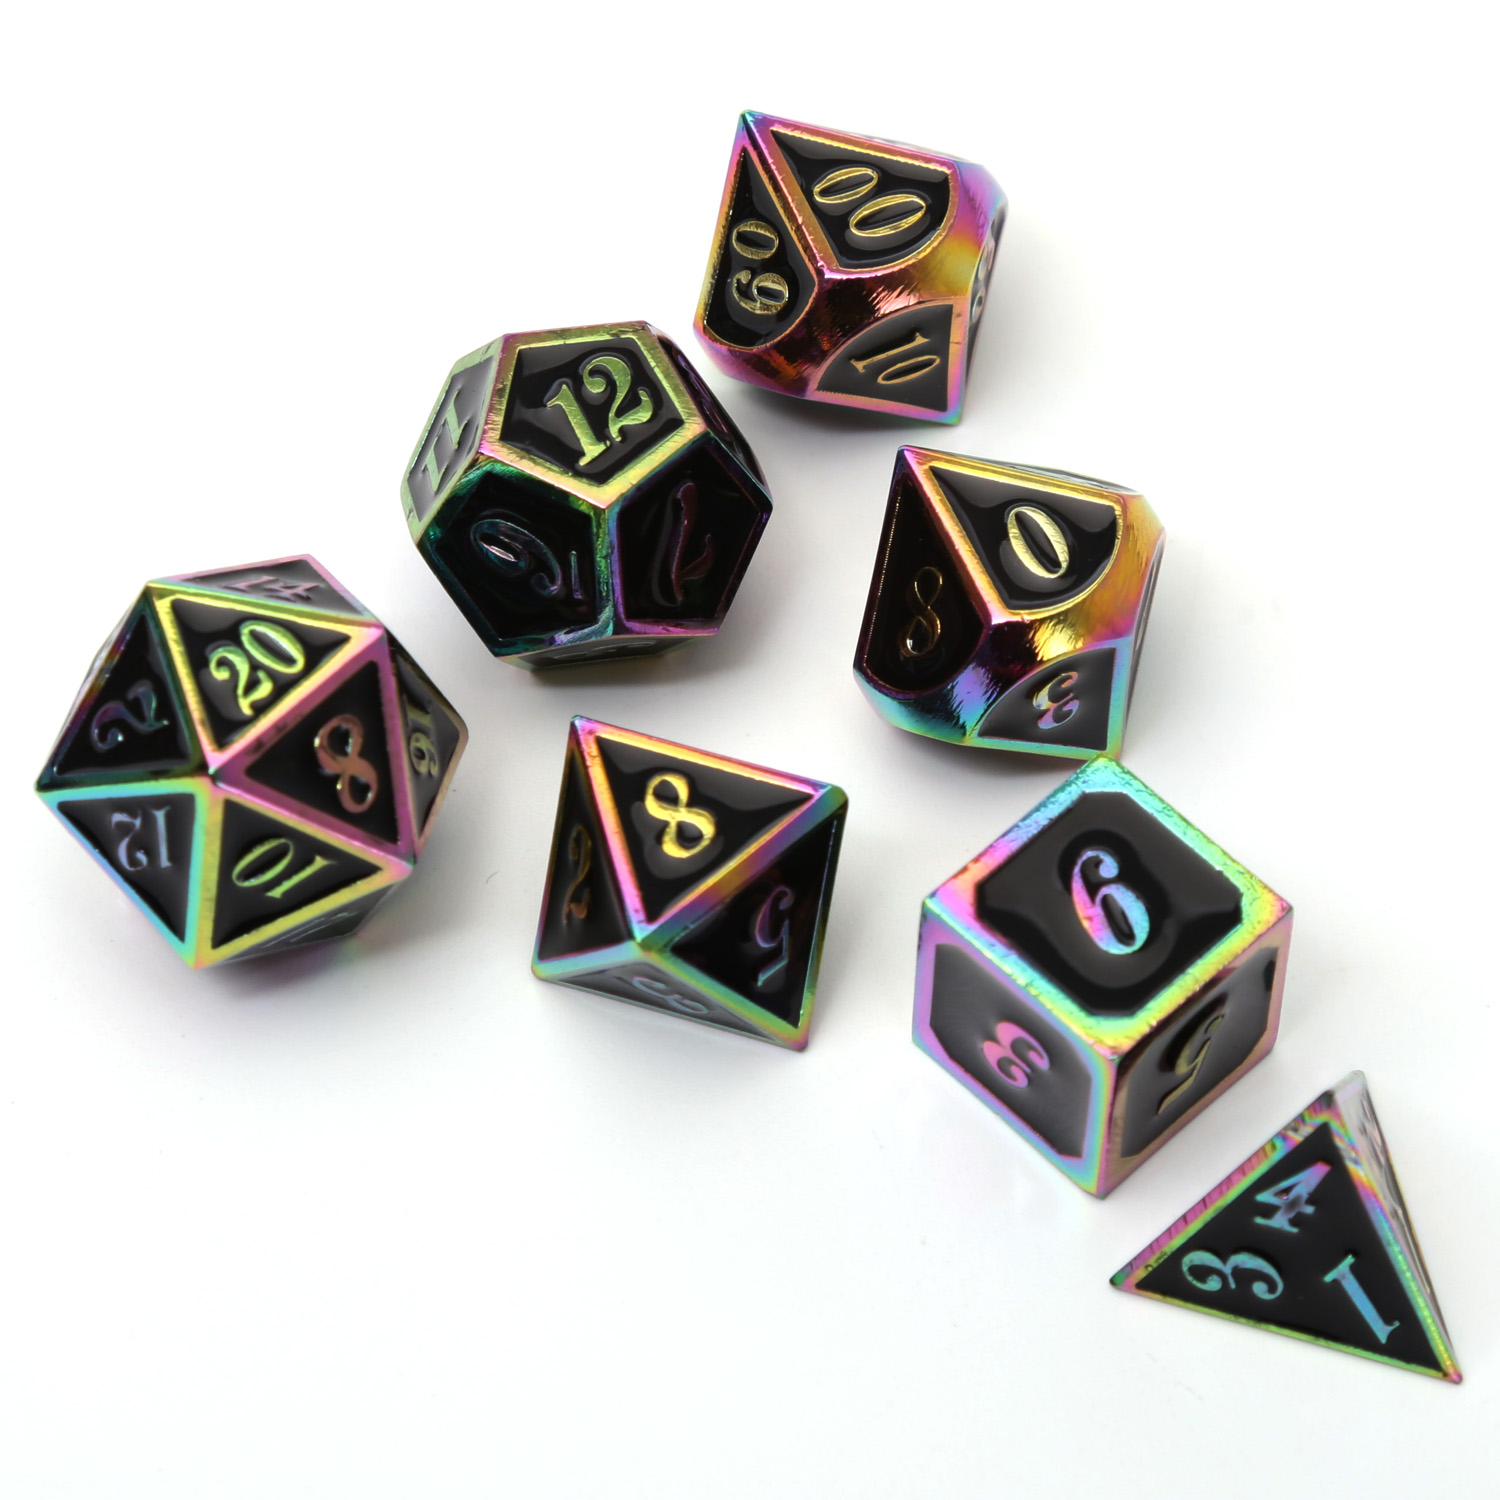 Chengshuo Rainbow Dnd Dice Metal Rpg Set Polyhedral Dungeons And Dragon Black Zinc Alloy Green Digital D&d Dices Table Games D20